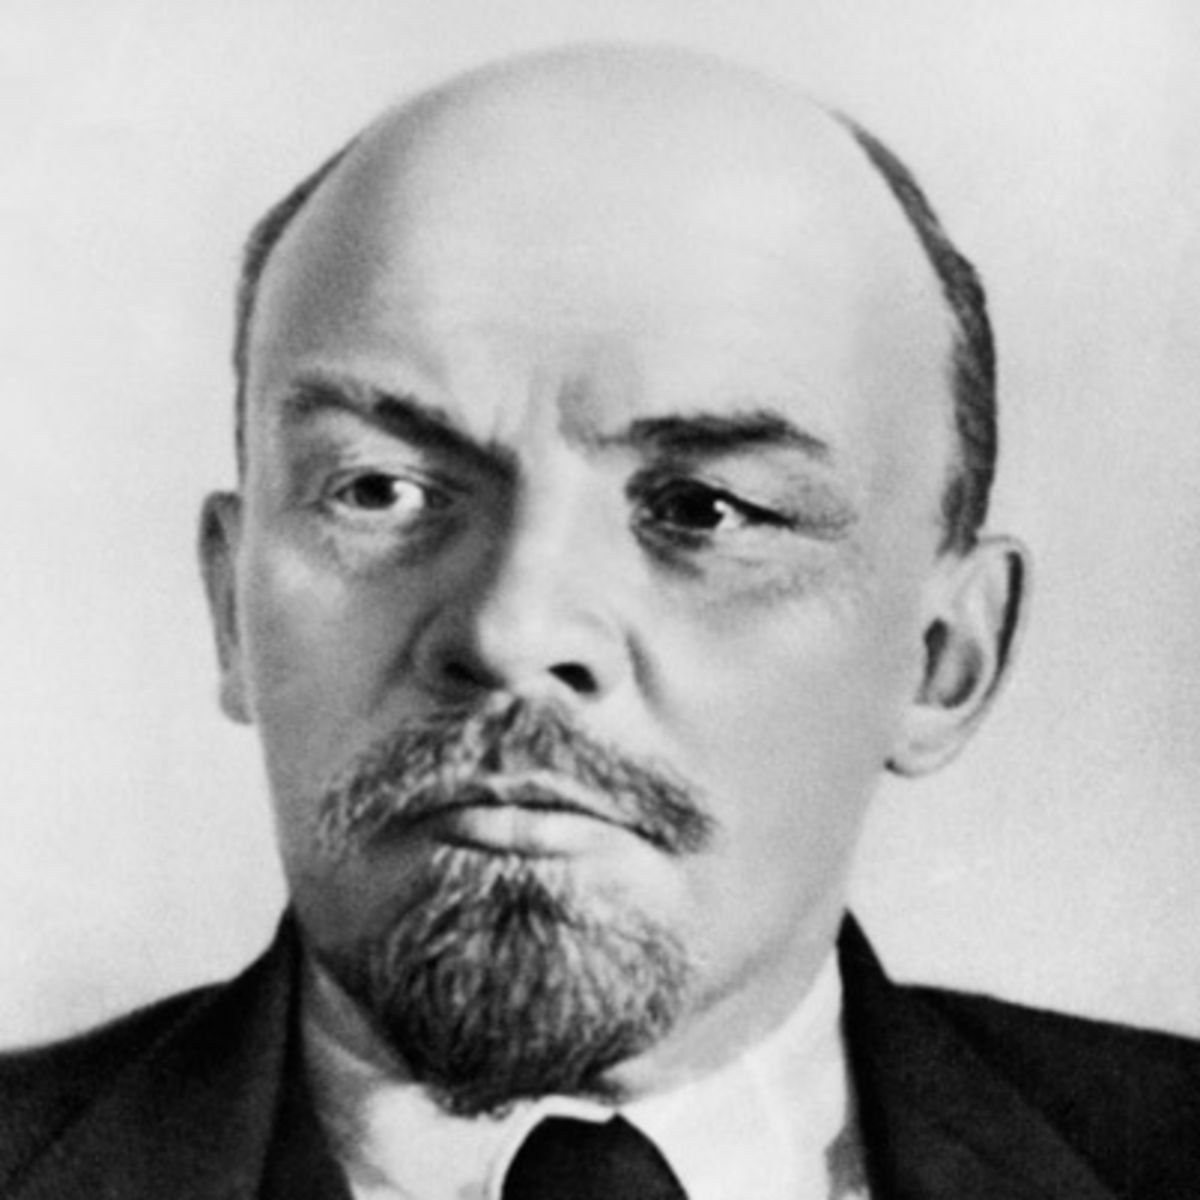 vladimir lenin biography essay Vladimir ilich lenin encyclopædia britannica, inc if the bolshevik revolution is—as some people have called it—the most significant political event of the 20th century, then lenin must for good or ill be regarded as the century's most significant political leader.